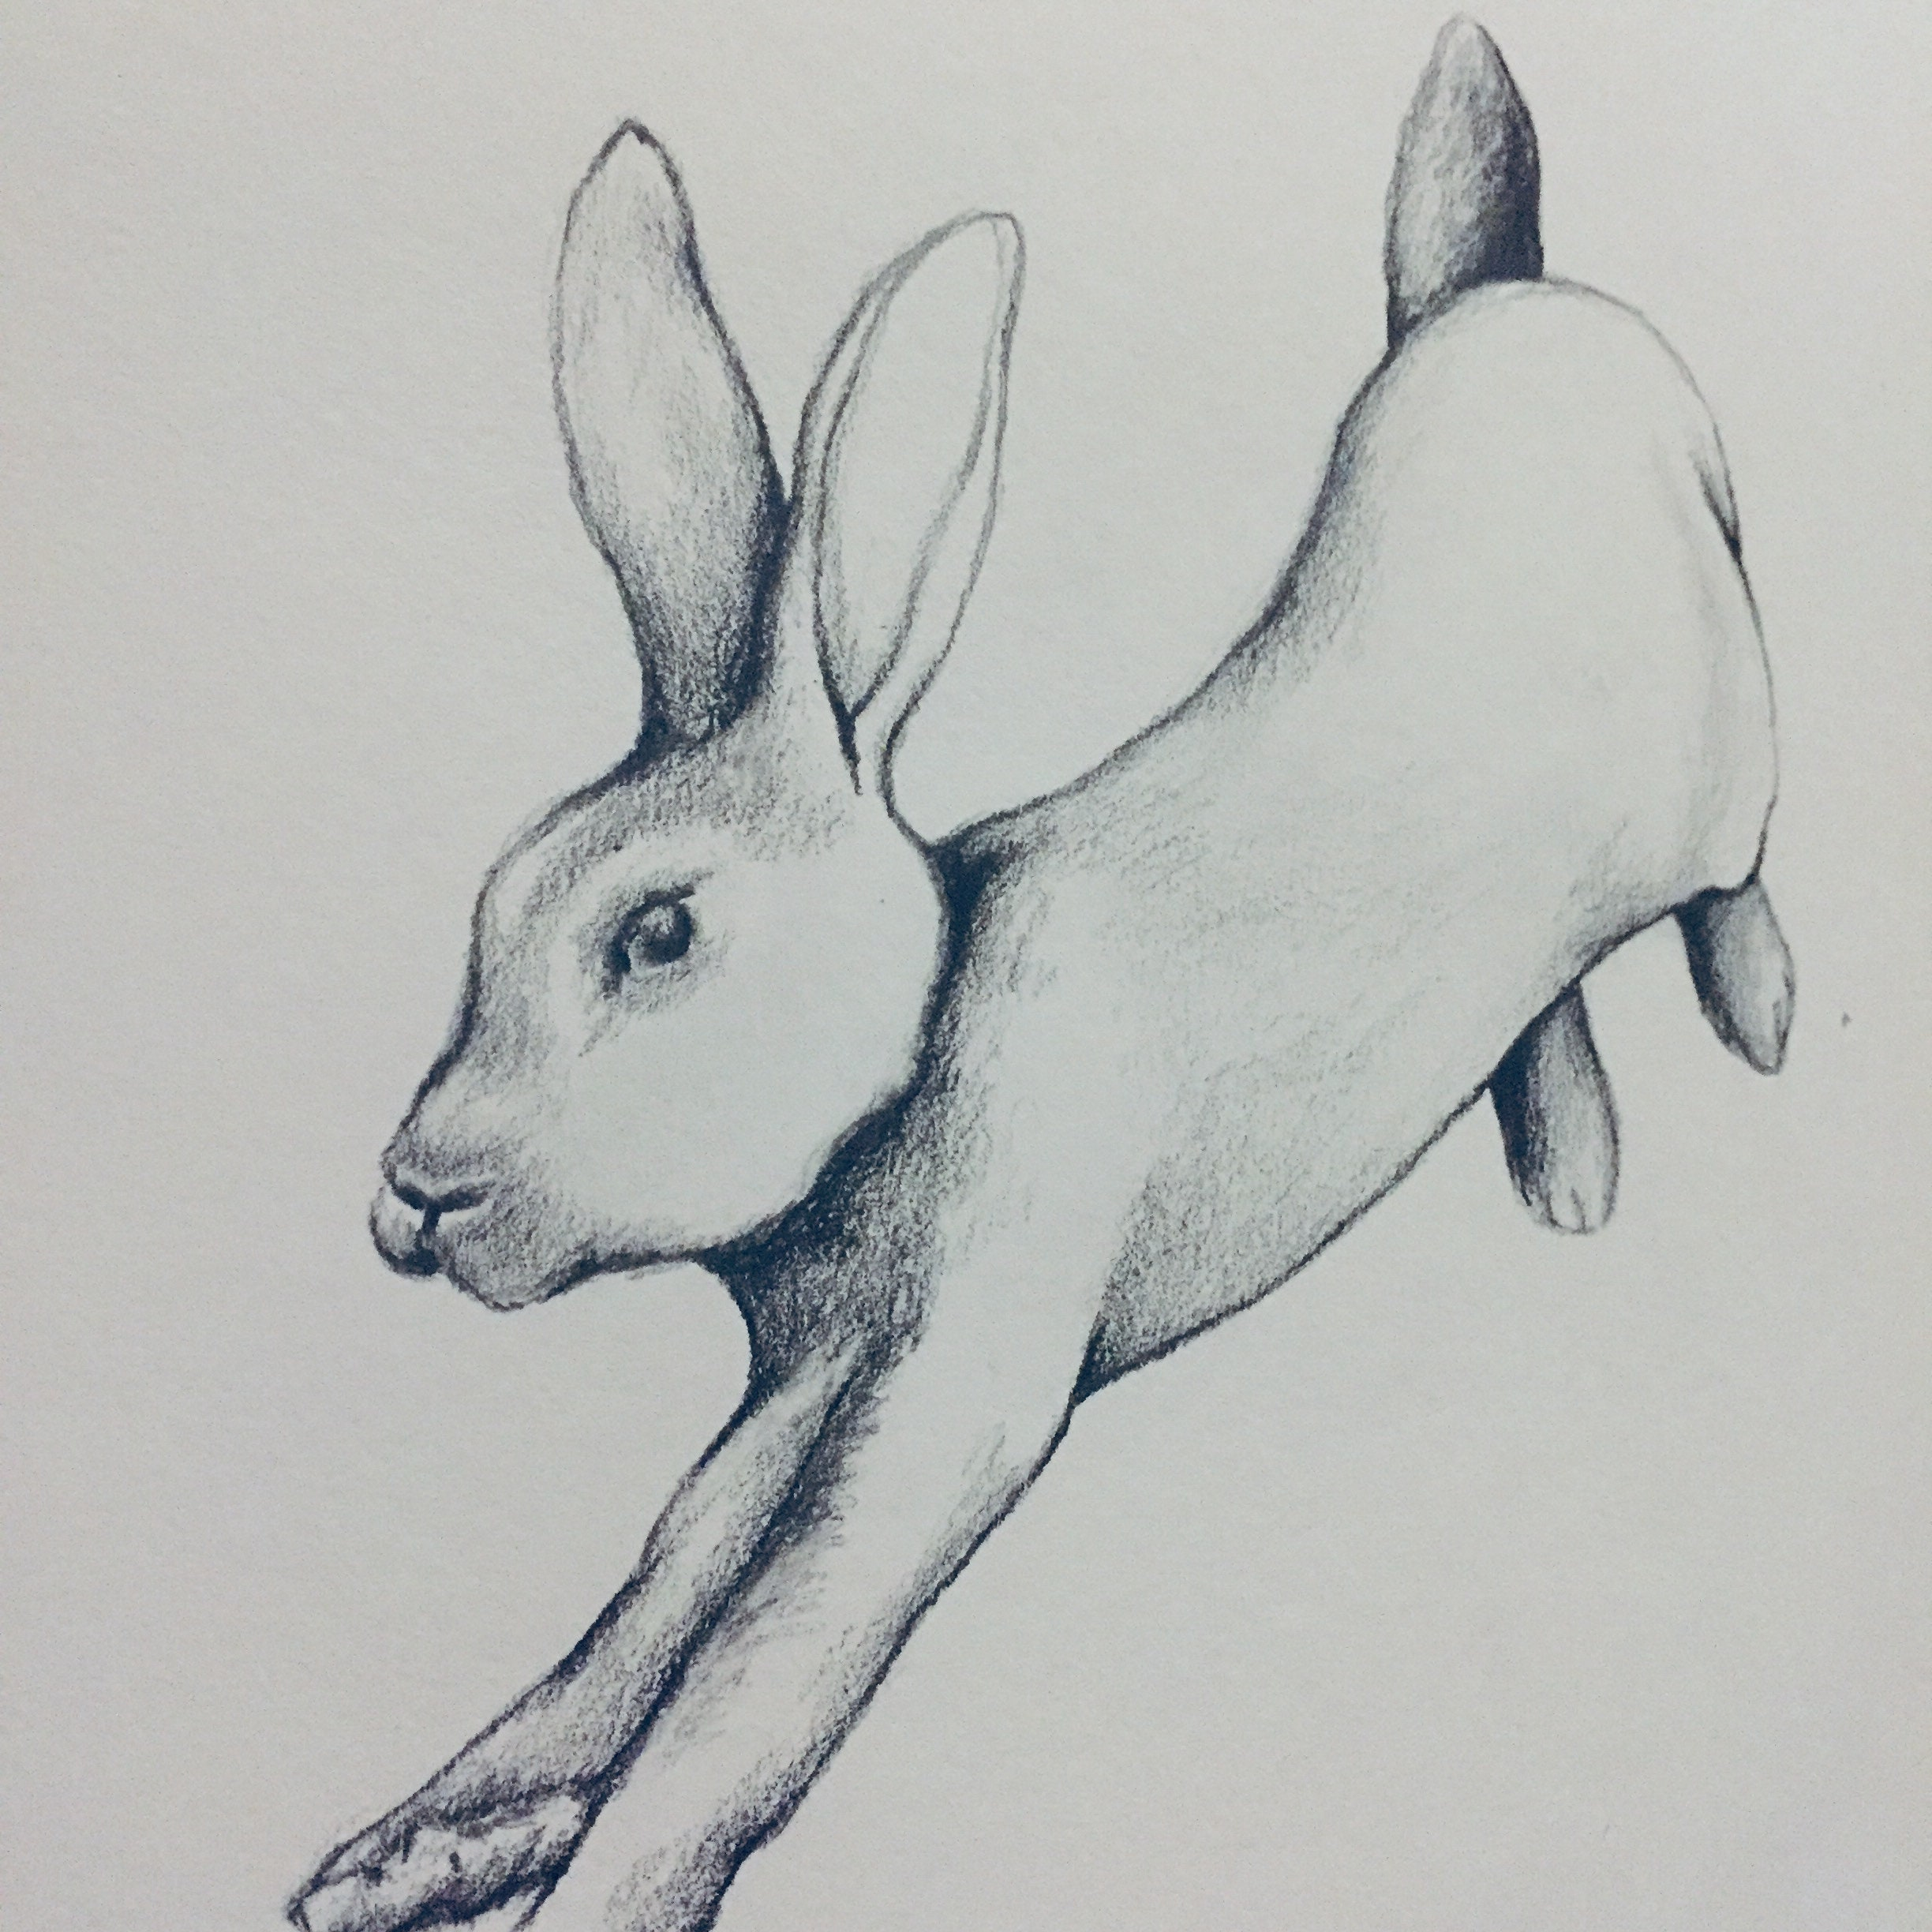 Original rabbit pencil drawing wall art country rustic decor woodland animal illustration black and white new baby gift